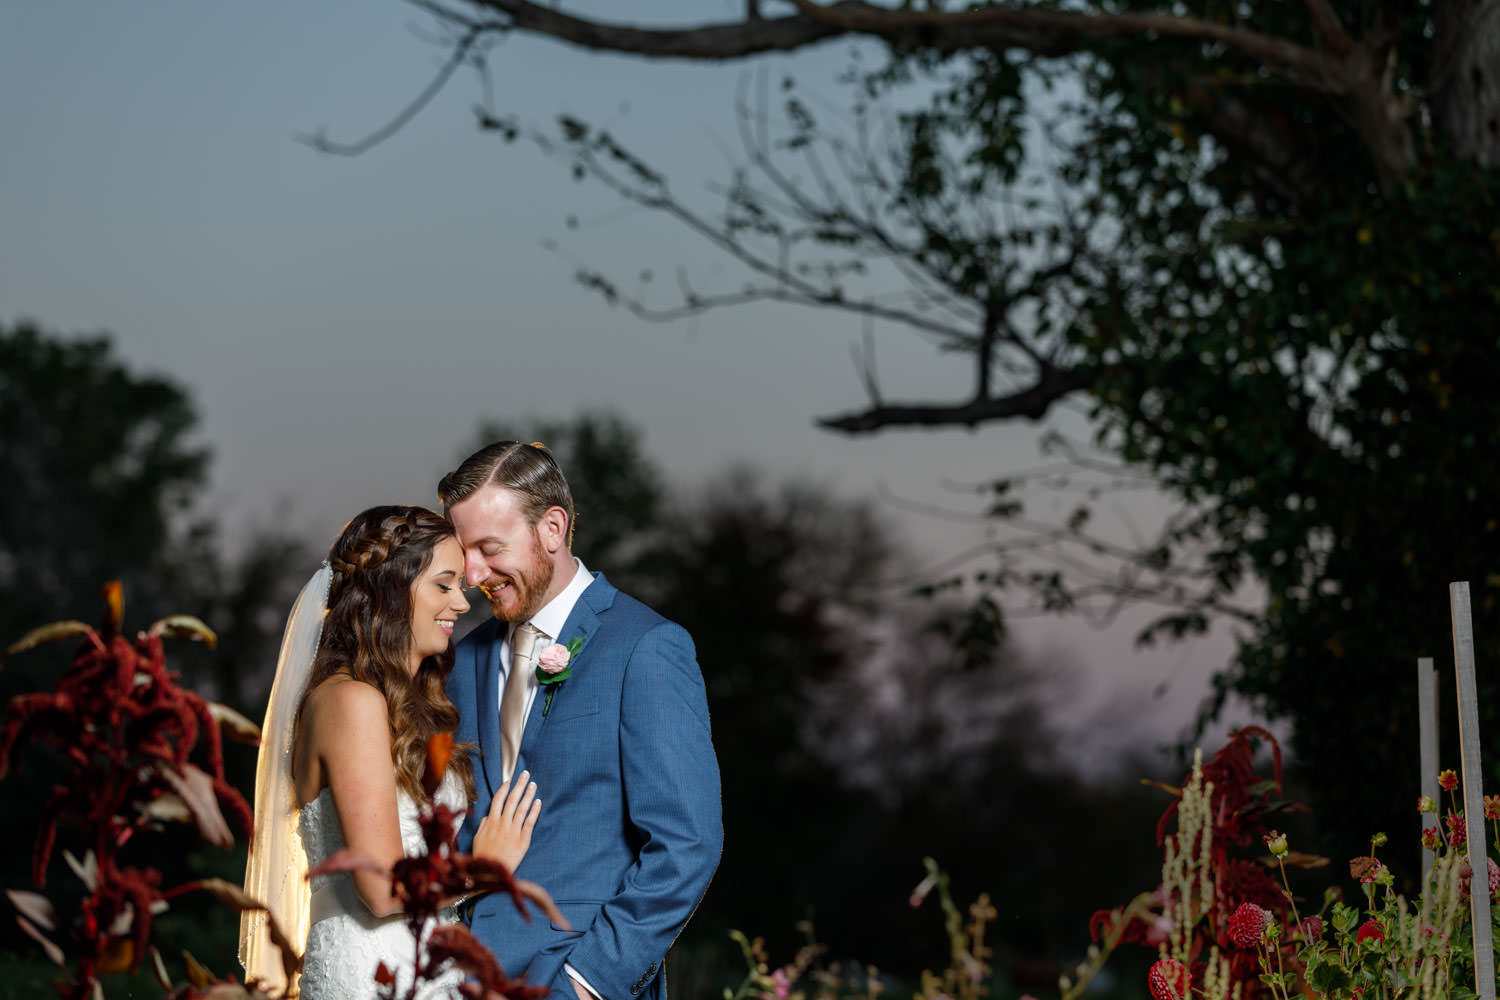 Bride and Groom Portrait at sunset in garden